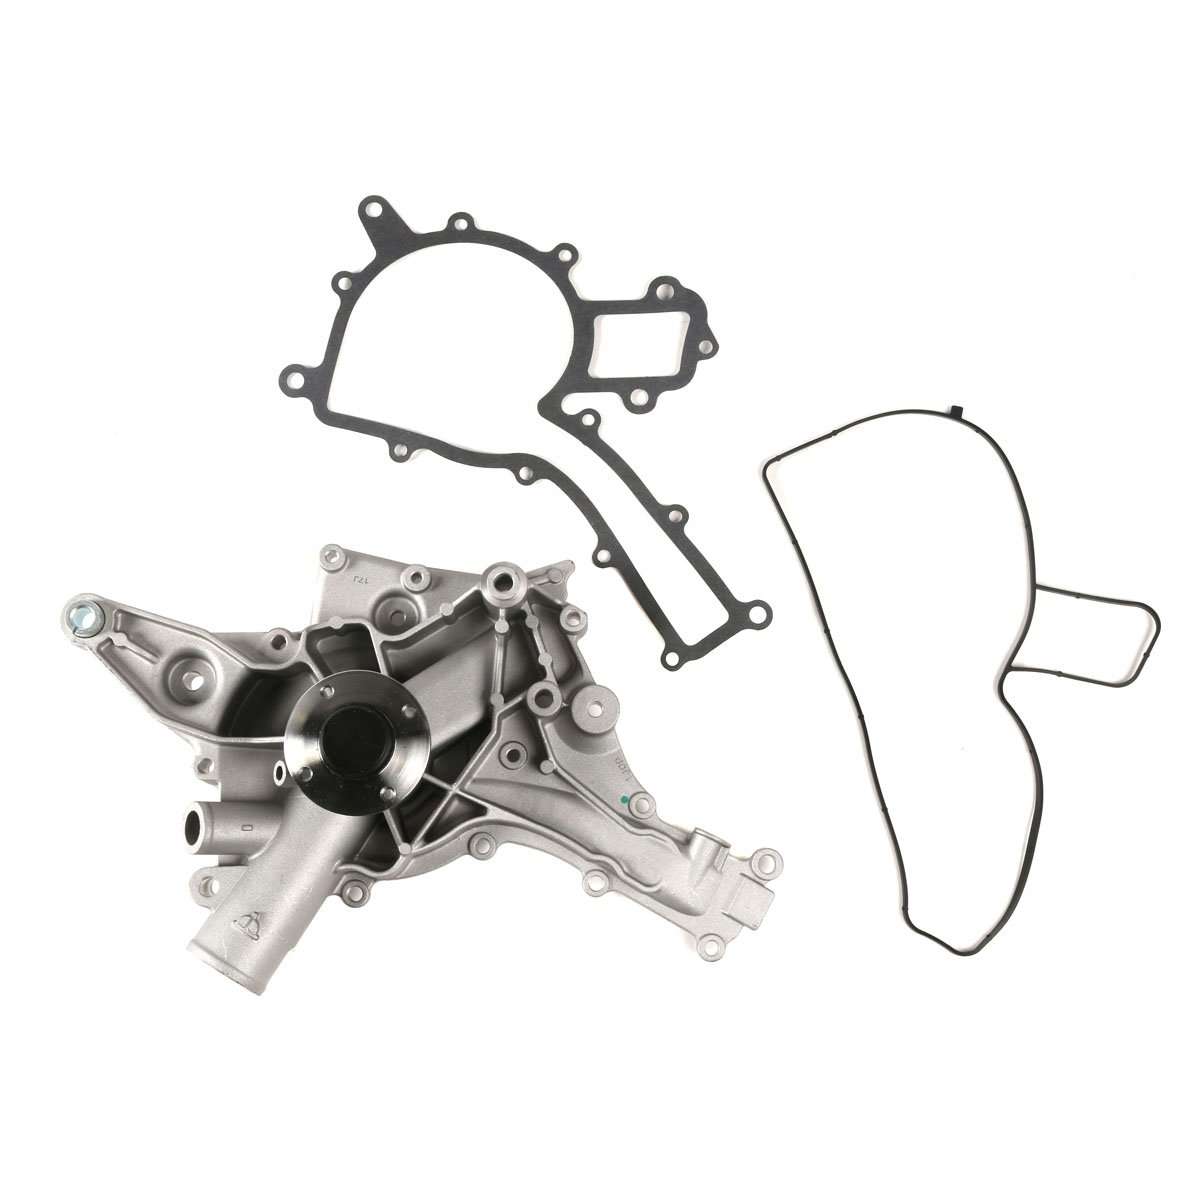 98-08 Mercedes-Benz G500 /& CLK500 /& CLS500 /& E500 /& C240 3.2L 4.3L 5.0L MOCA 147-2250 Engine Water Pump Kit for 04-08 Chrysler Crossfire